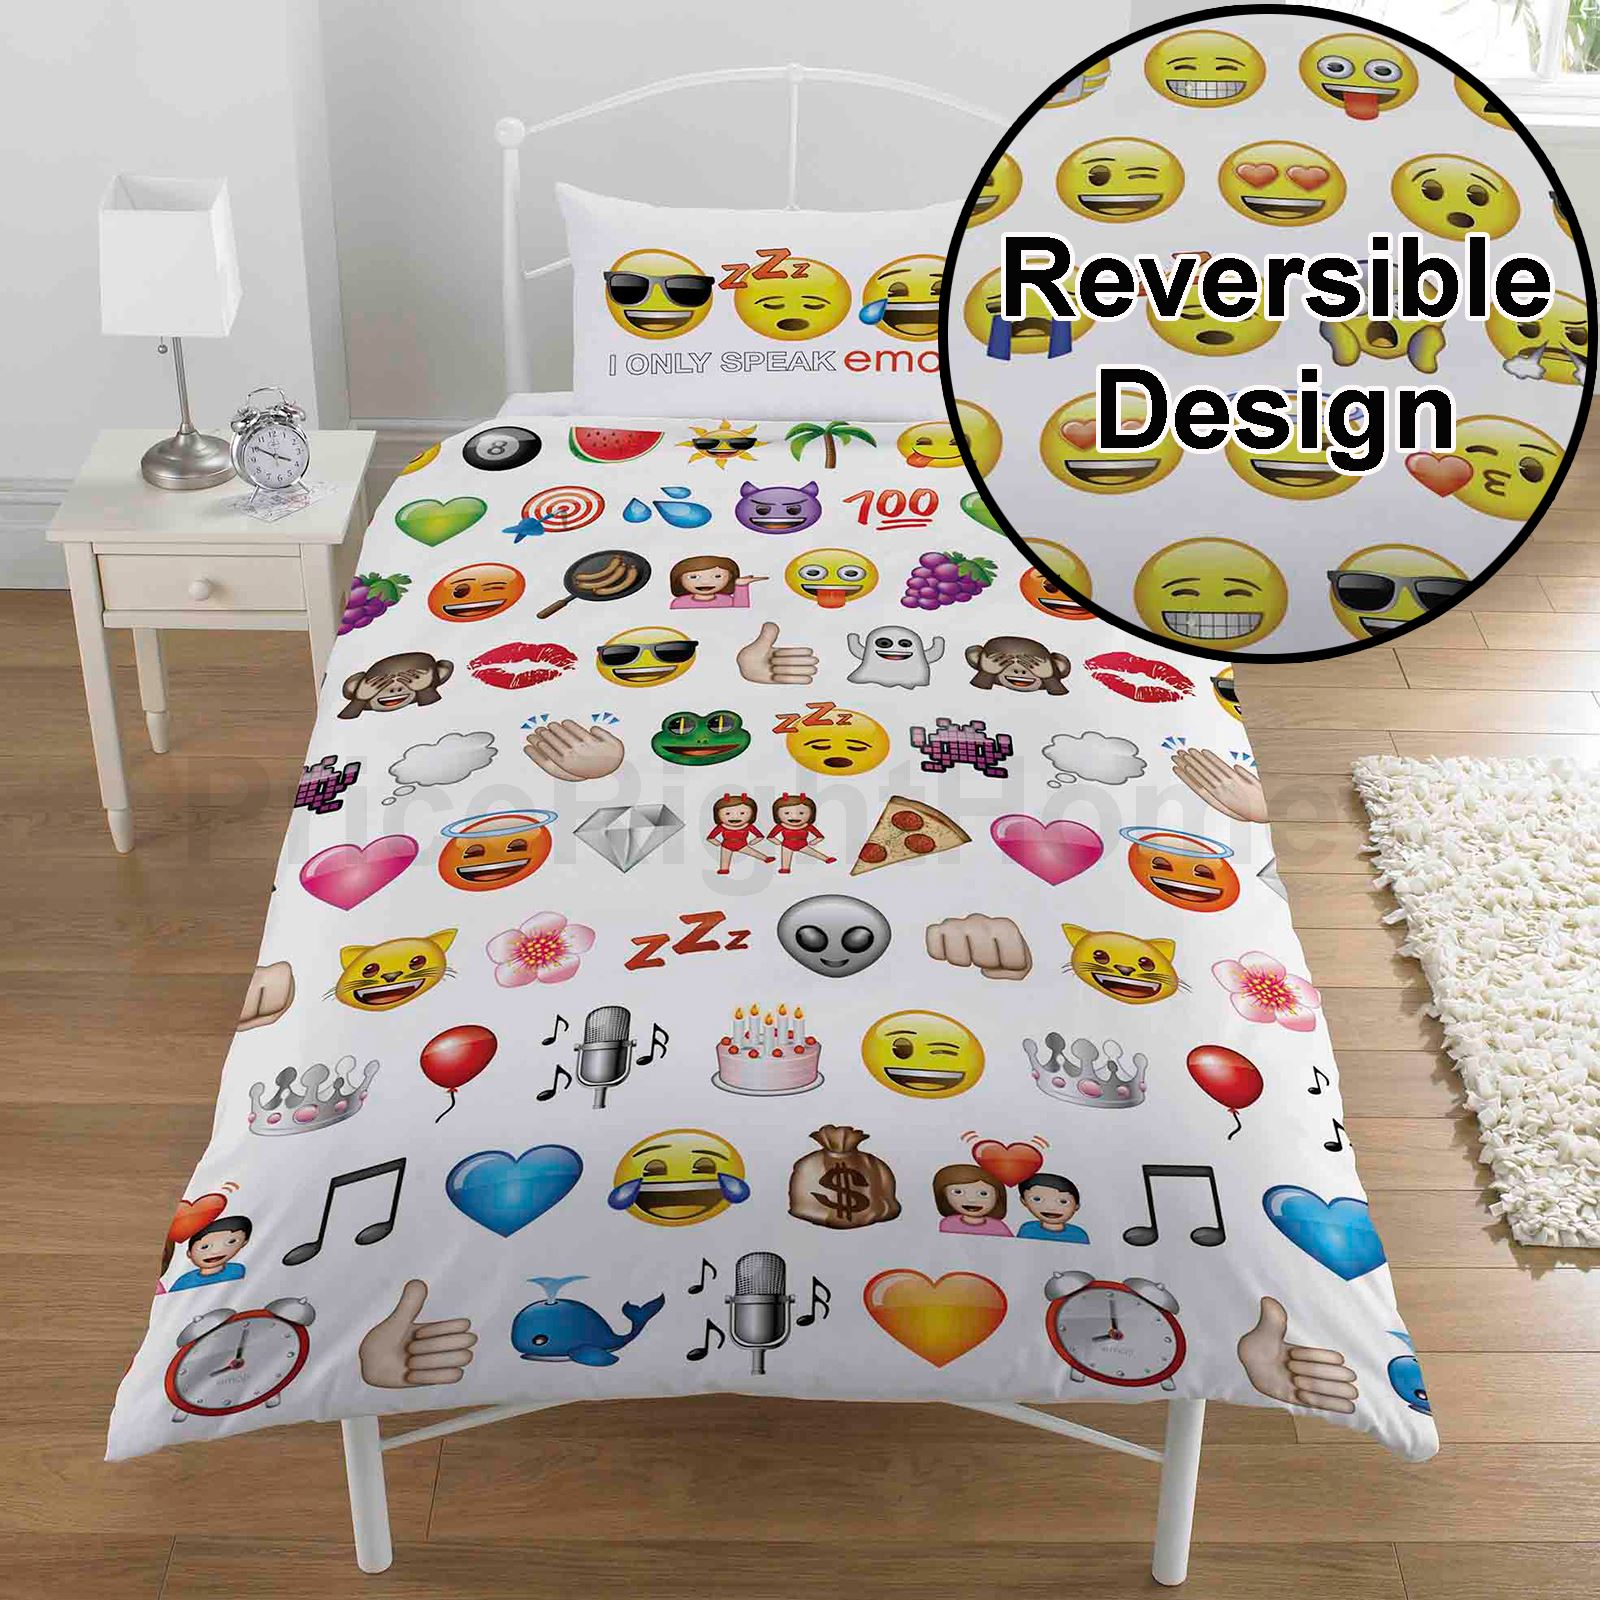 emoji bettbezug sets einzel doppel erh ltlich lustig smiley bettw sche ebay. Black Bedroom Furniture Sets. Home Design Ideas